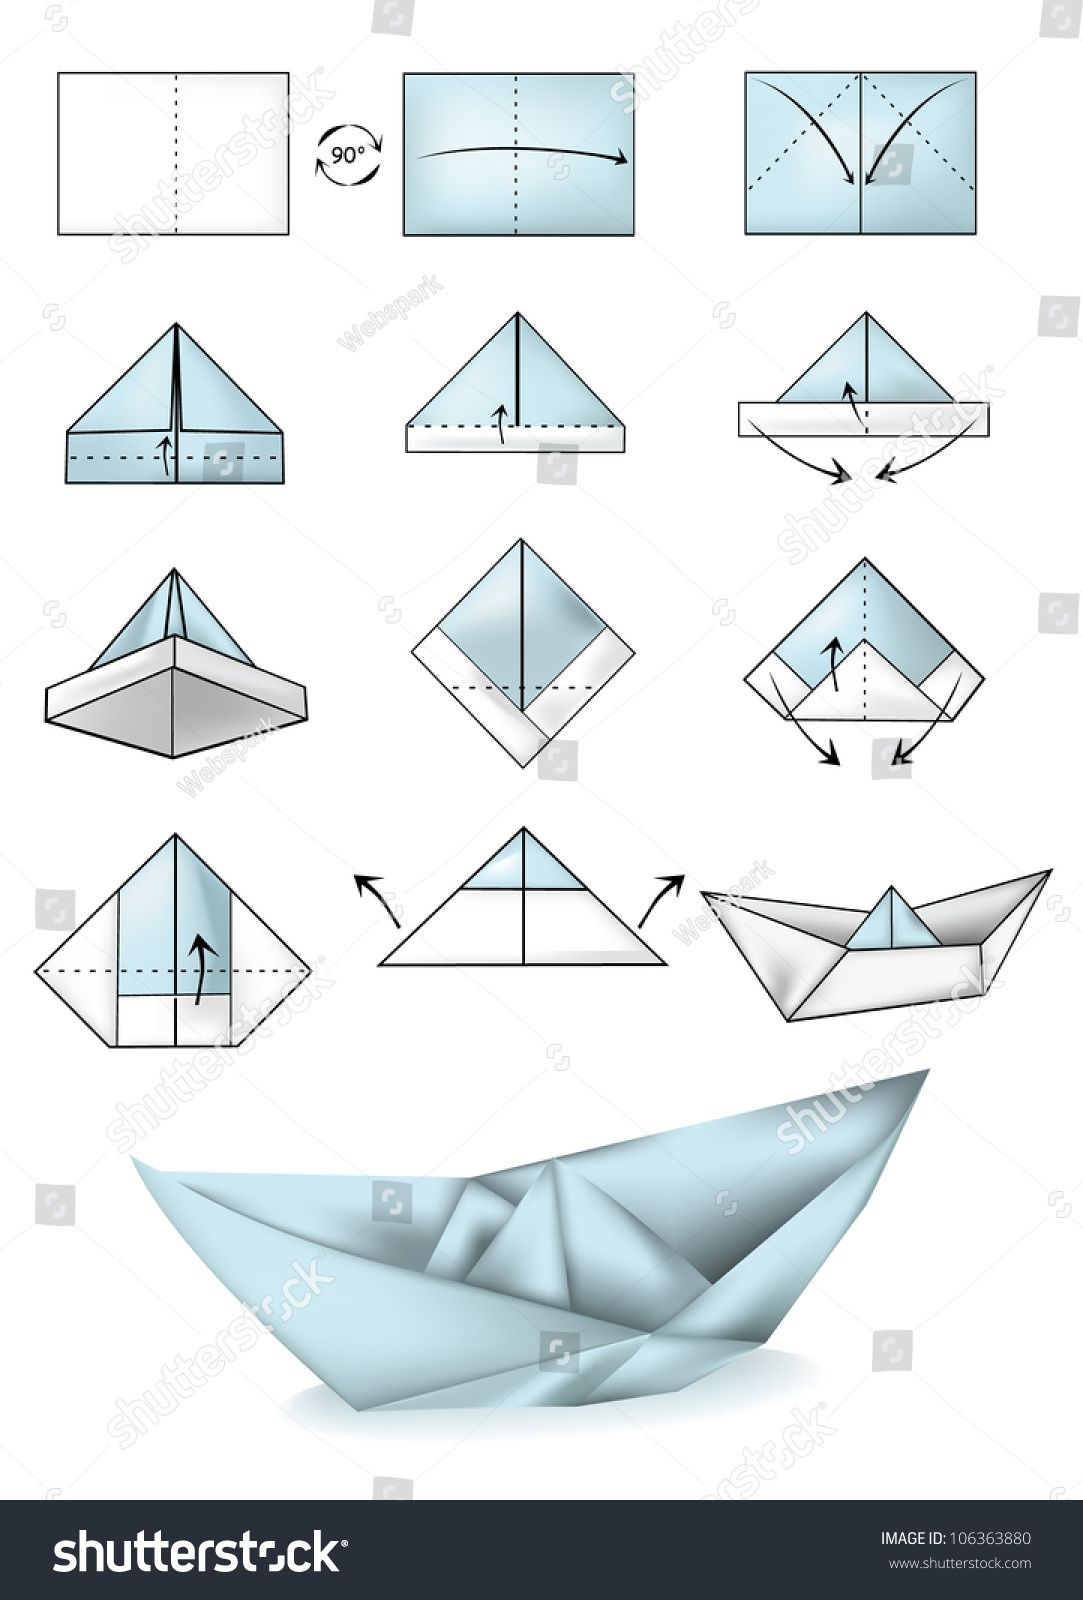 Paper Boat Instructions Illustration Tutorial Stock-Vektorgrafik (Lizenzfrei) 106363880